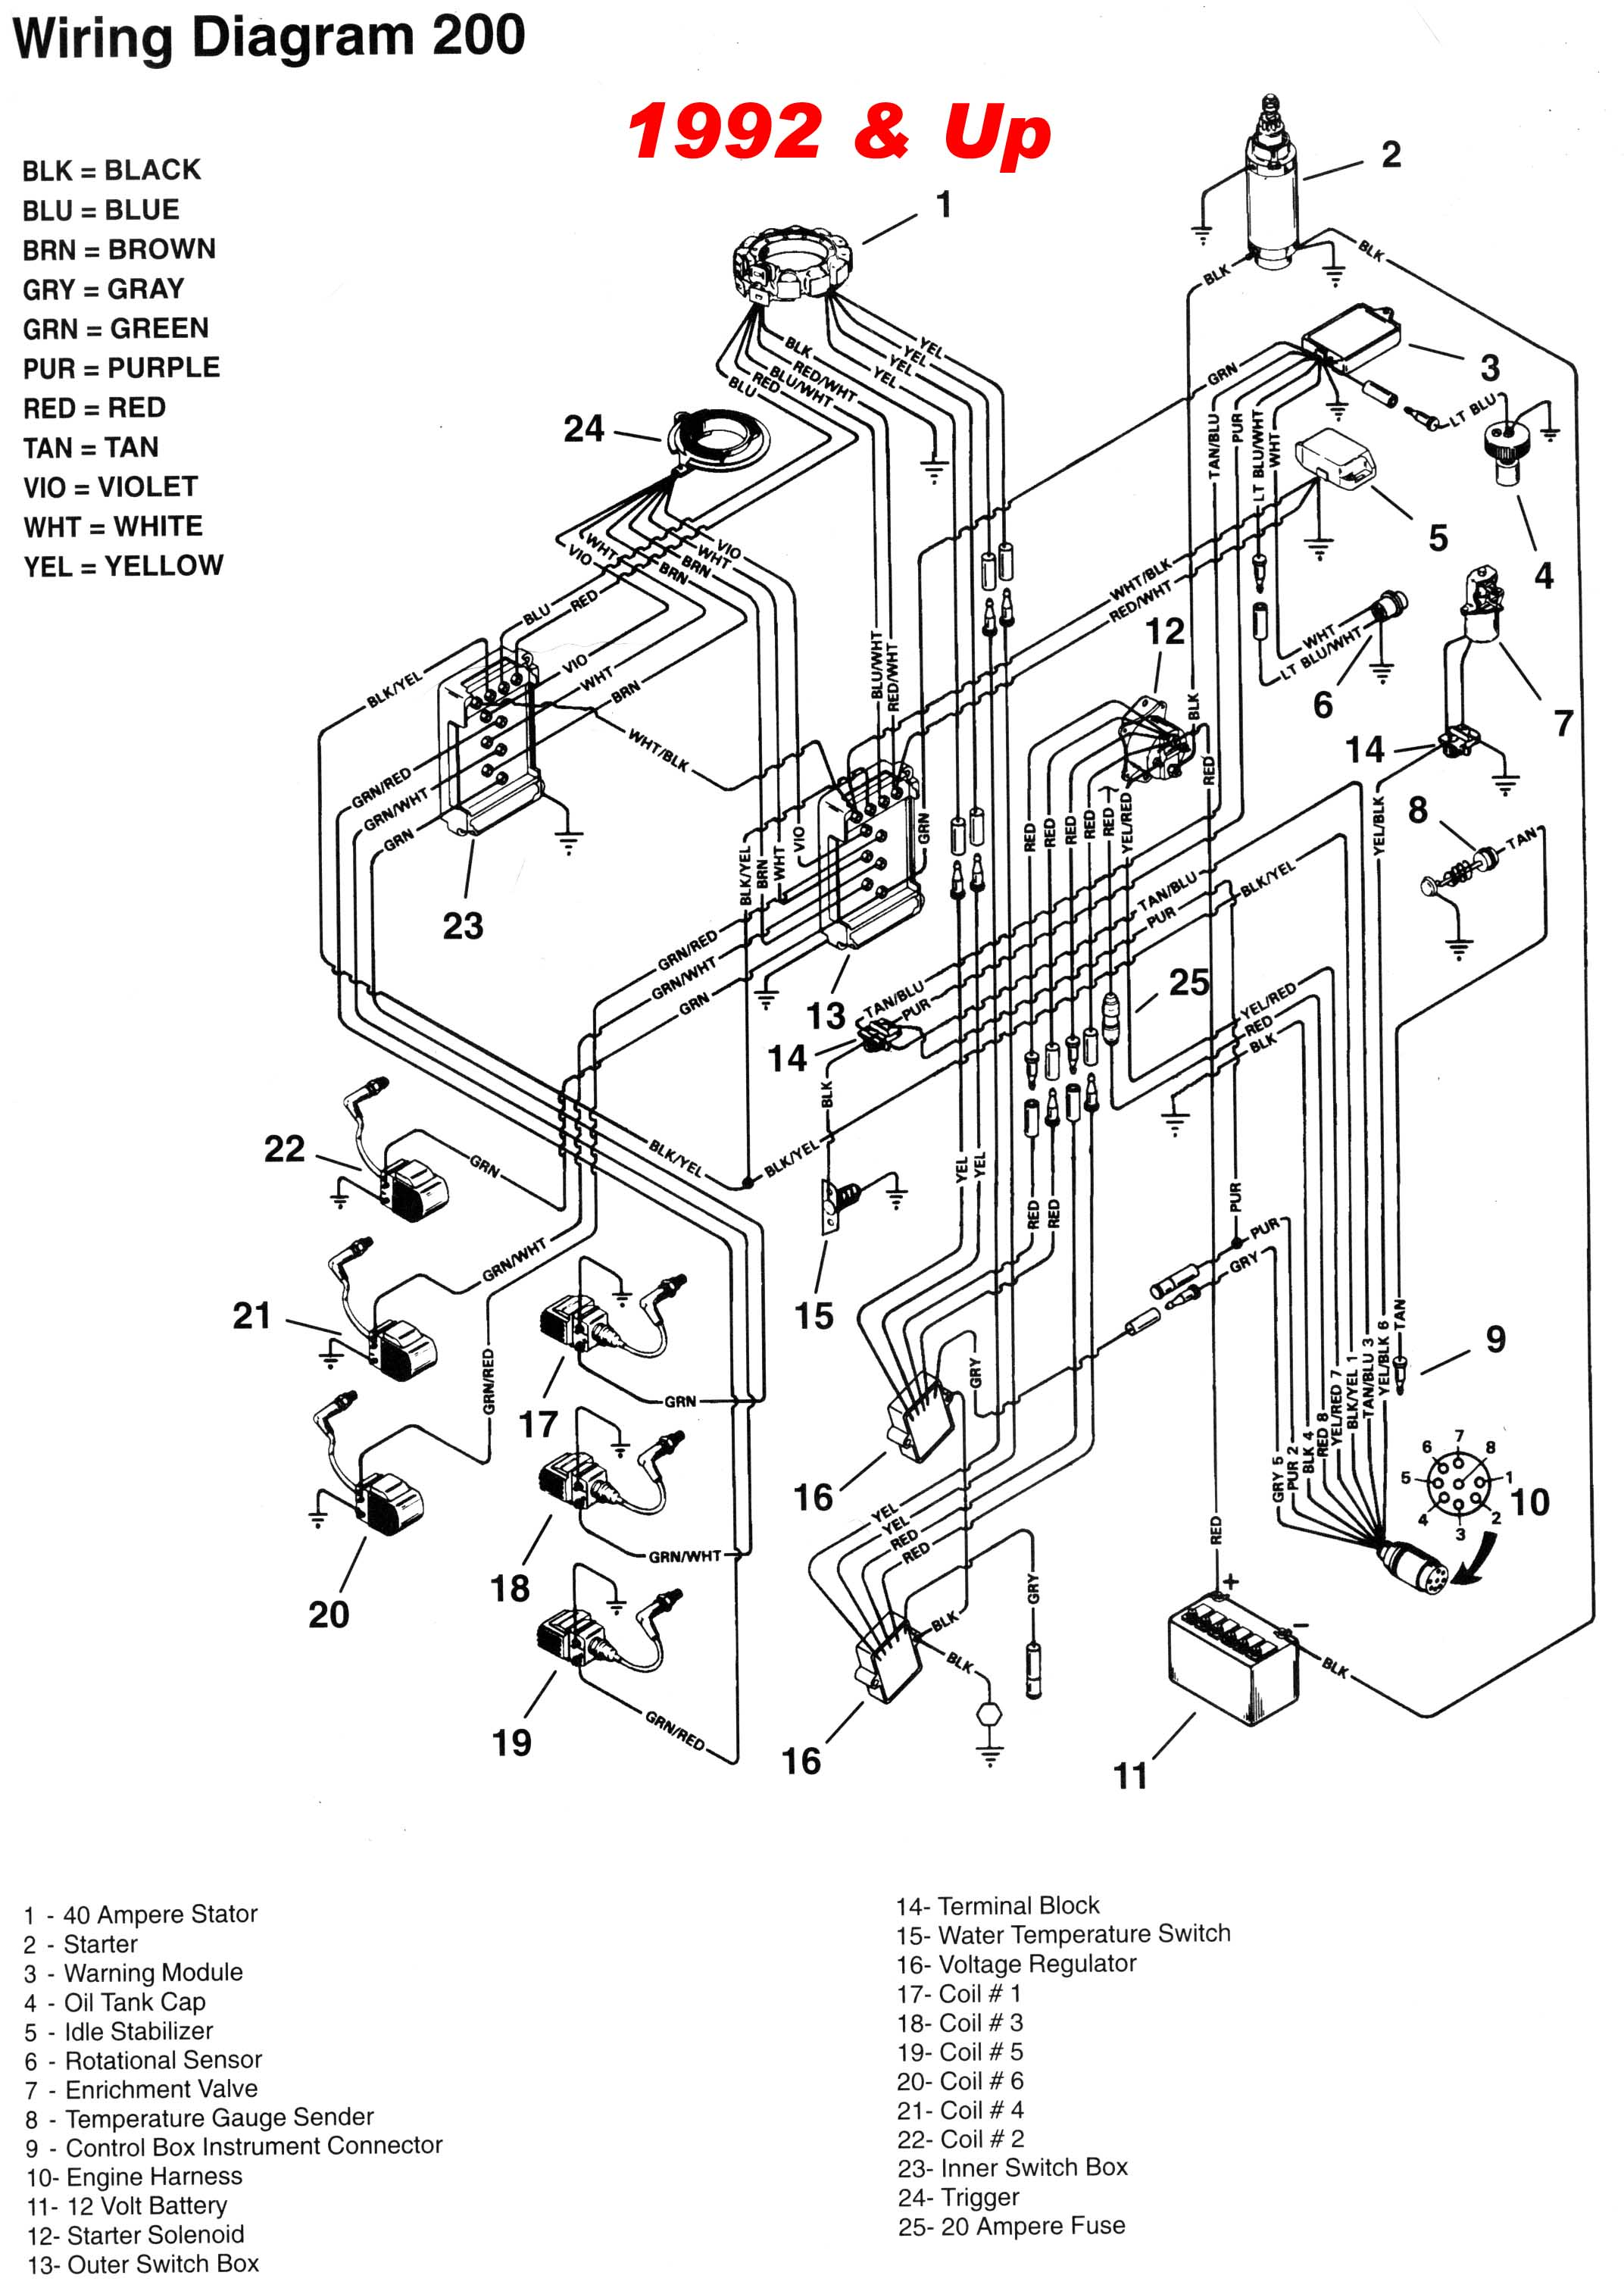 T8661894 Firing order additionally Ford Crown Victoria 4 6 Belt Diagram Html also Oet939705 furthermore Volvo Penta 5 0 Gl Wiring Diagram together with Jeep L4 Spark Plug Wiring Diagram 1947. on ford 5 4 firing order diagram